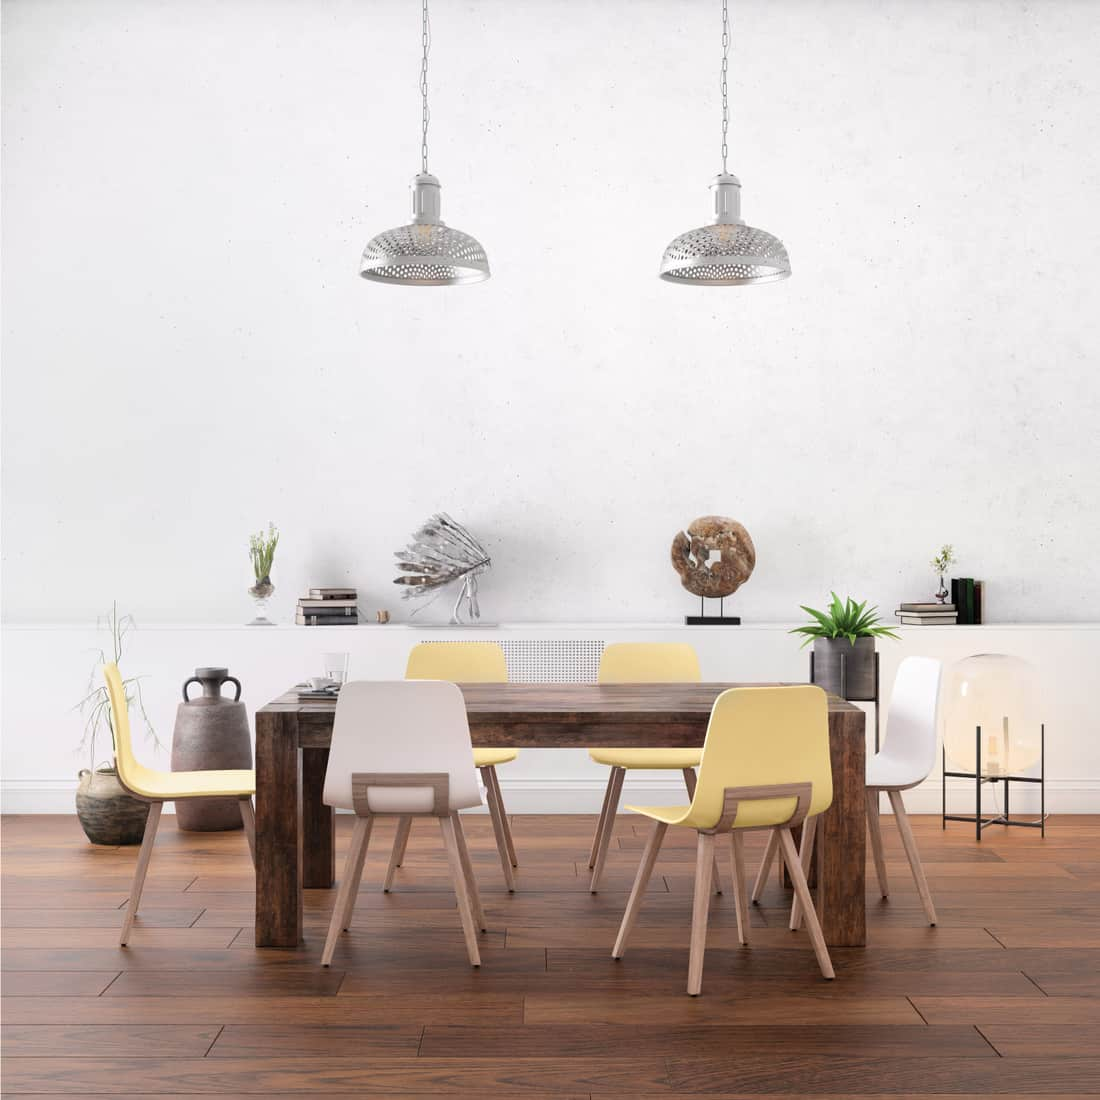 Nordic style office studio dining room with large oak table and chairs, mismatched chair and table legs